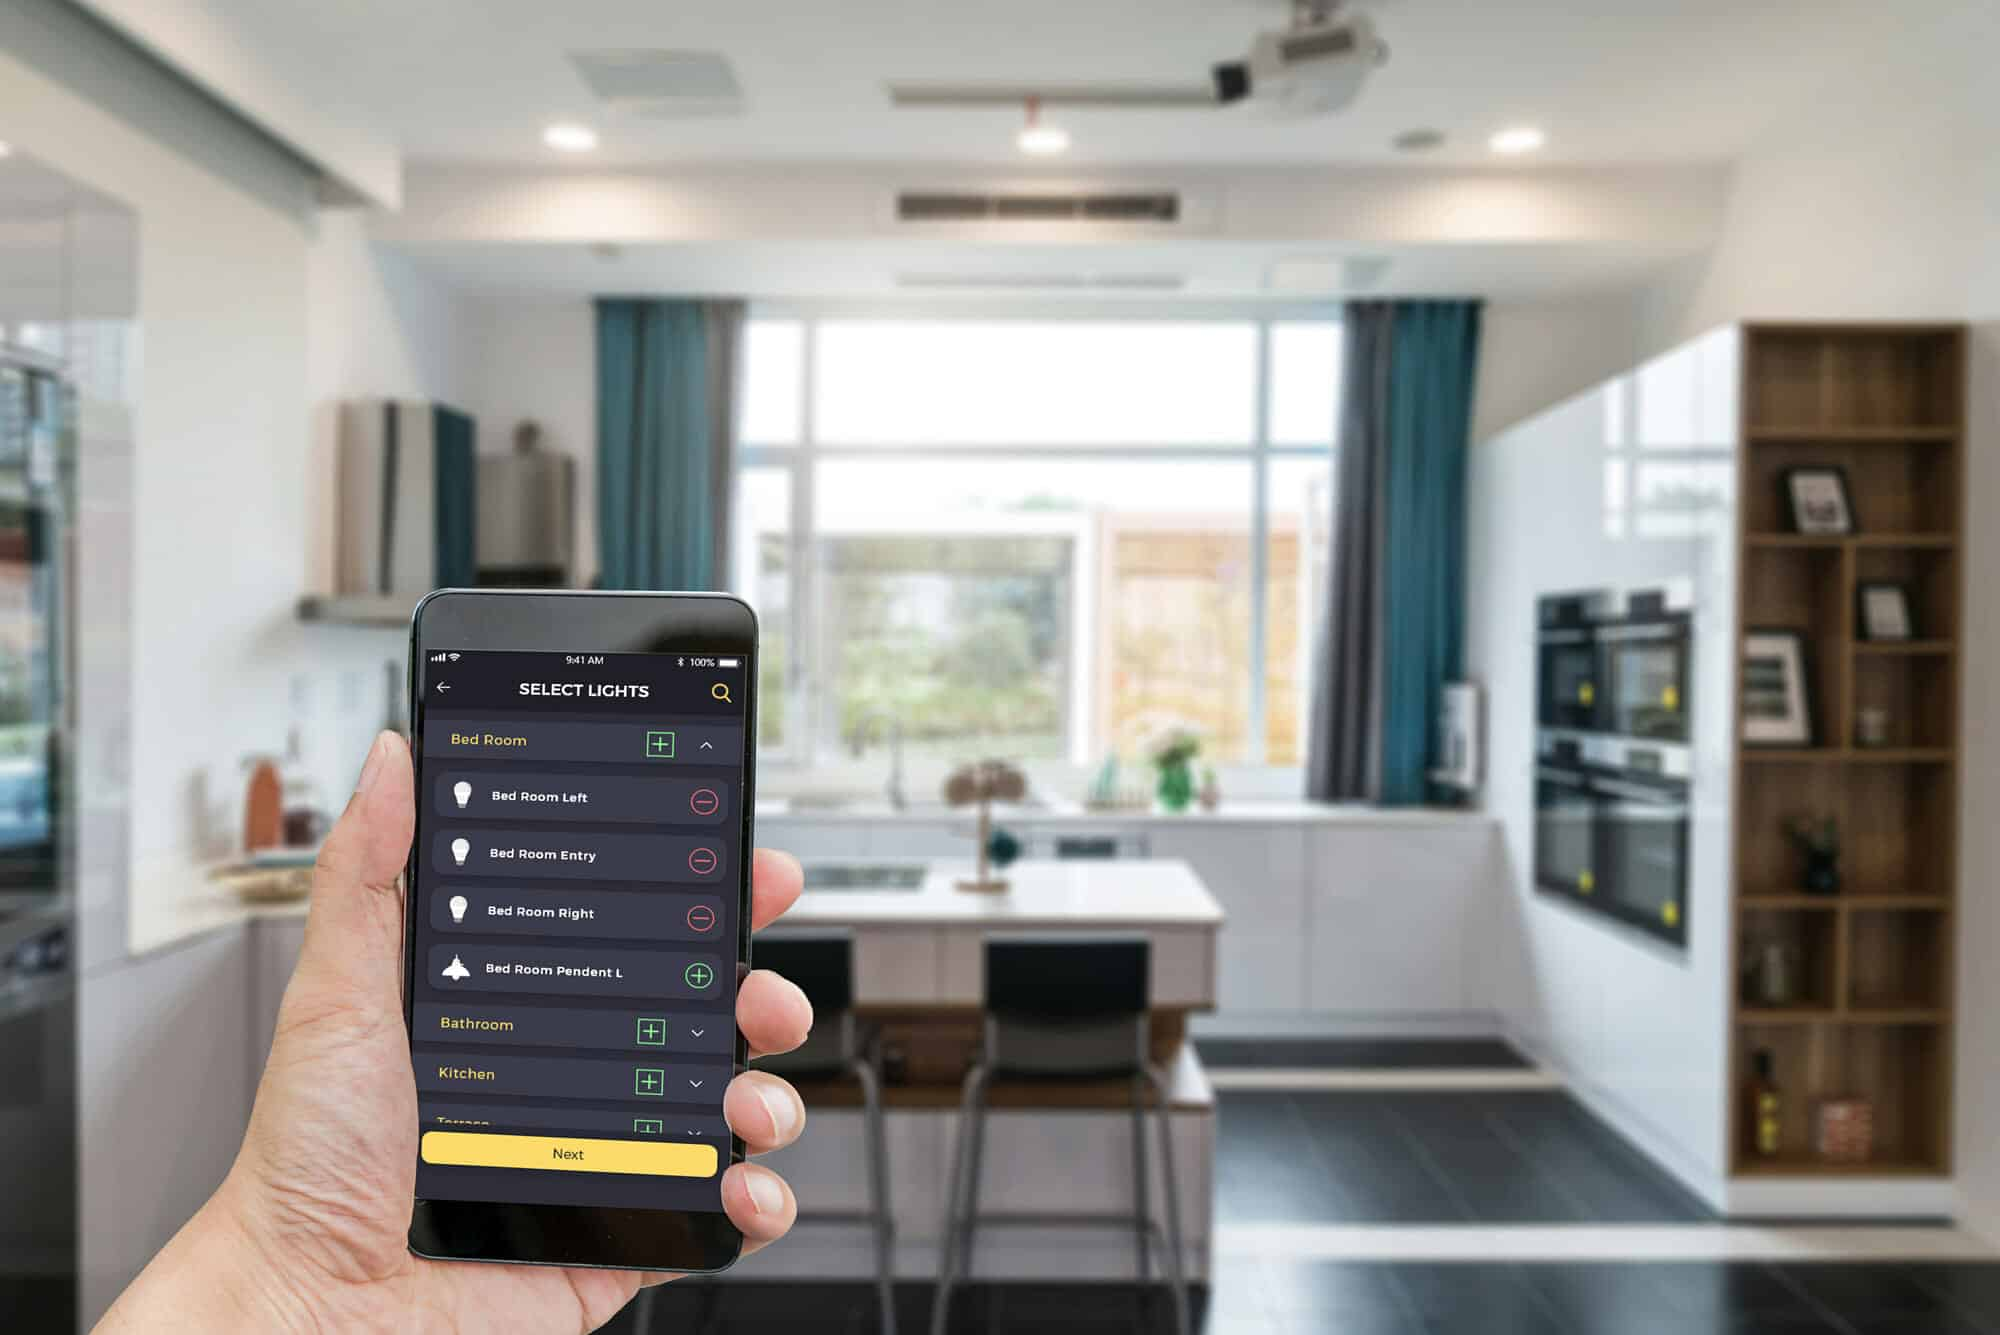 Cross-Platform Android/iOS App for Smart Home Automation